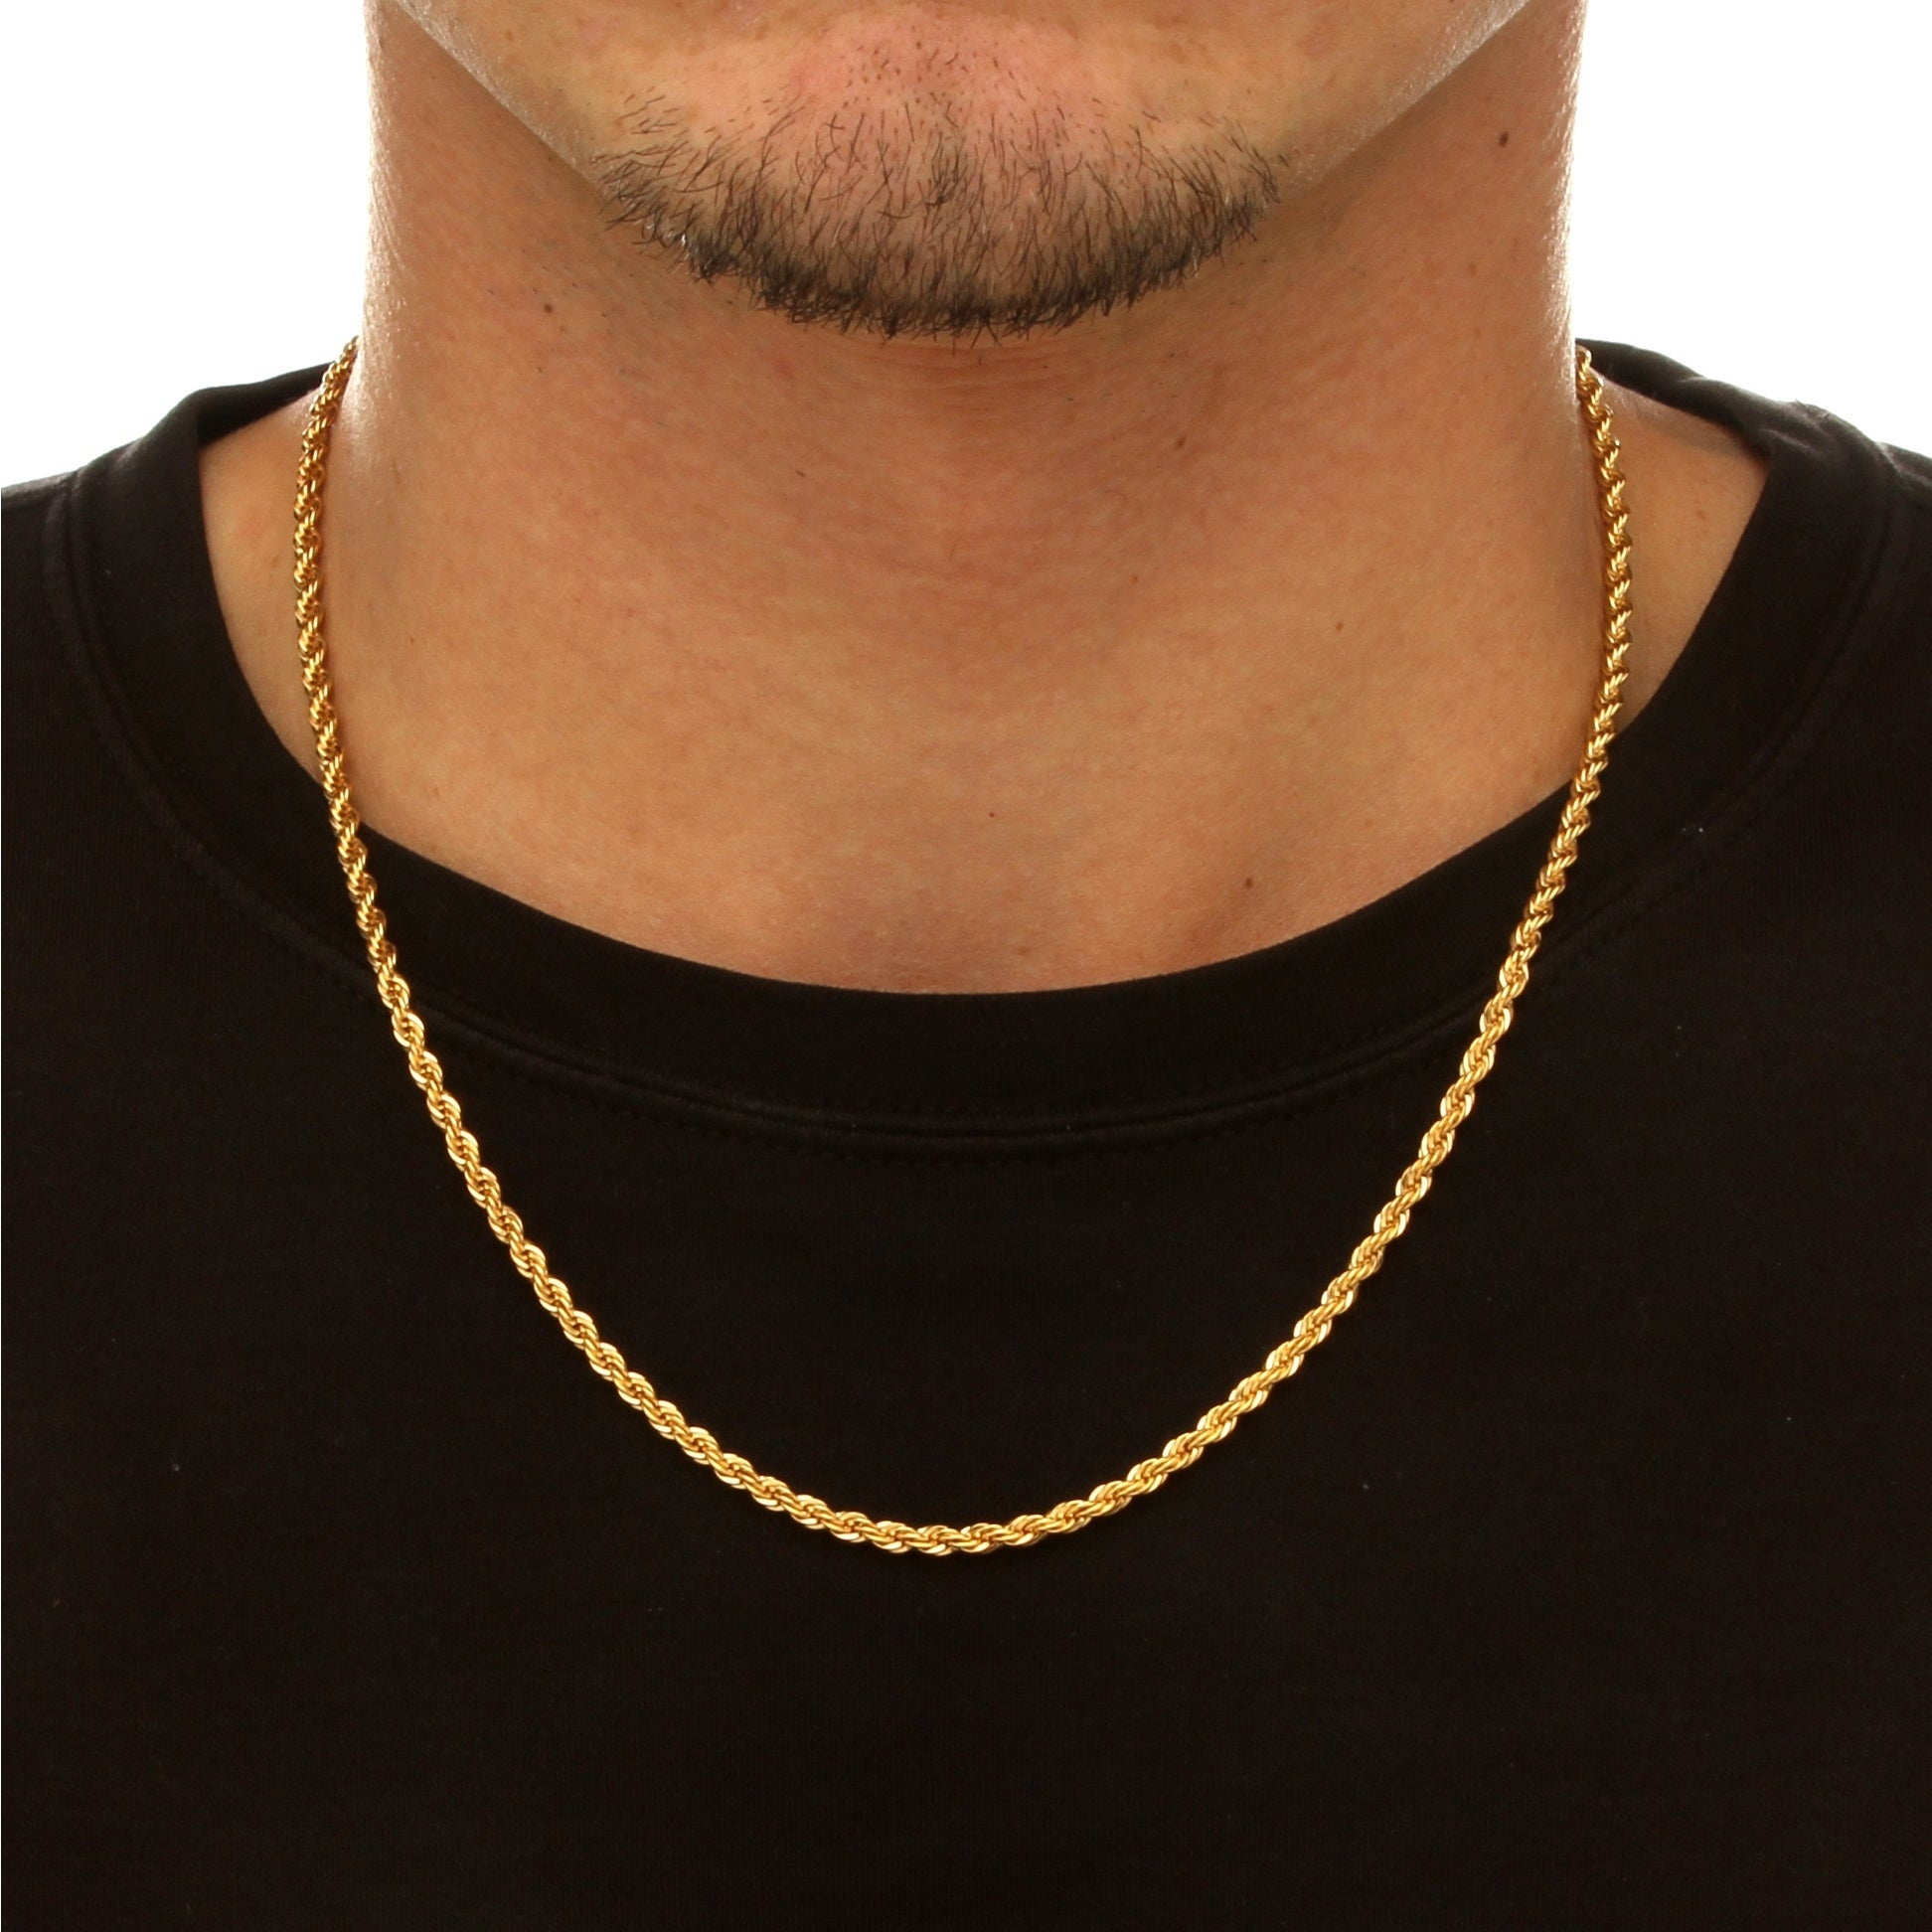 chain item sterling women statement men from jewelry for silver thai chains in pure mens necklace necklaces